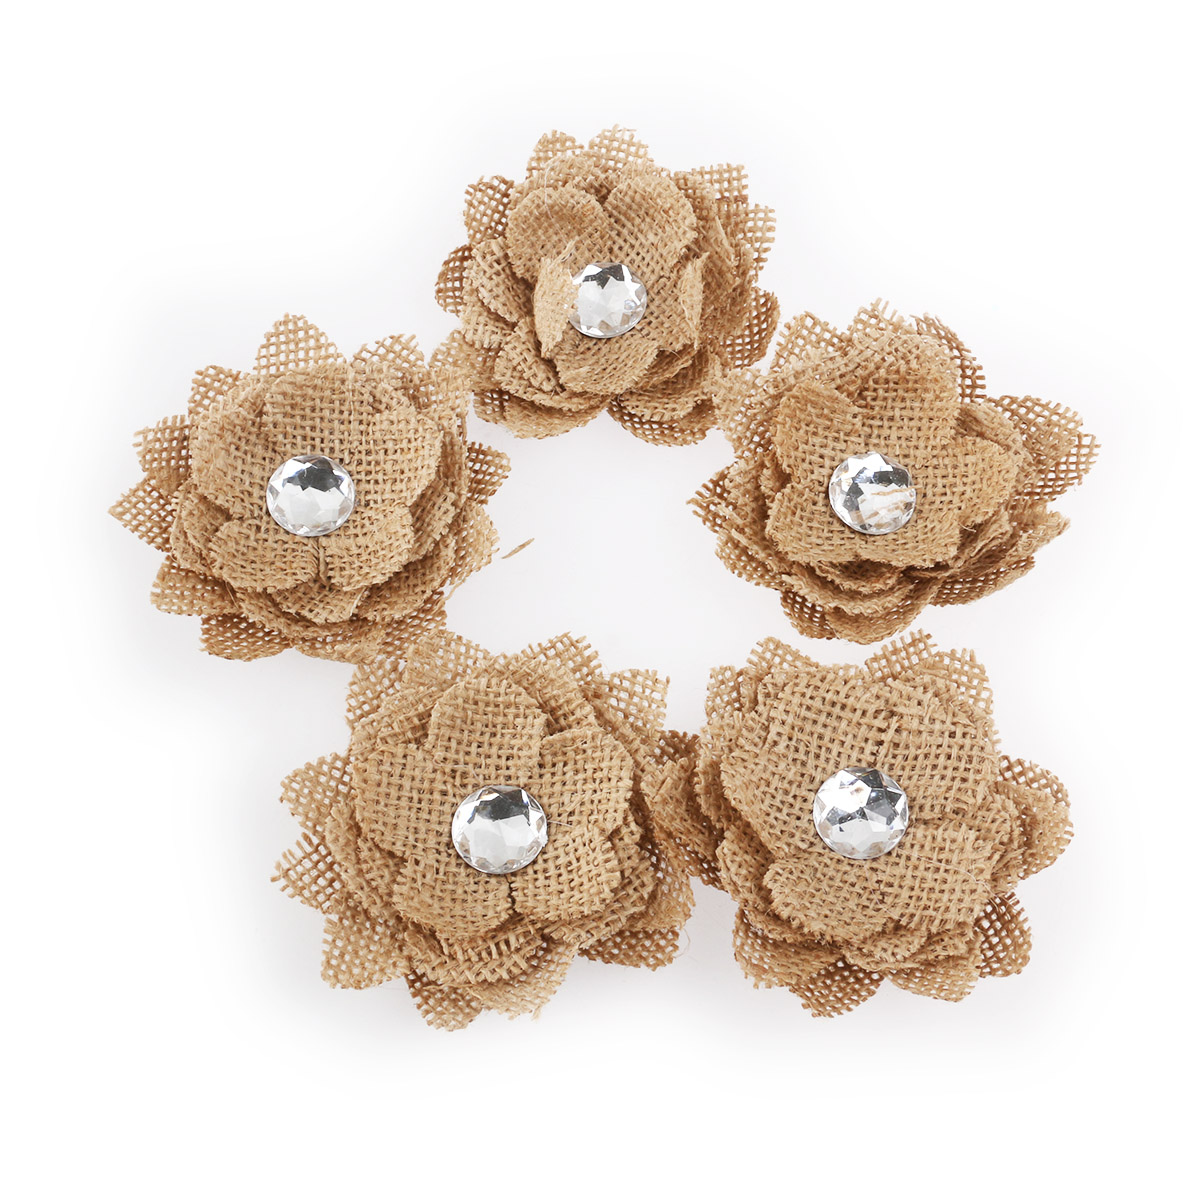 2017new 5pcs Crystal Hessian Burlap Rose Flowers for Christmas Wedding Decoration (Brown) New Year Ornaments